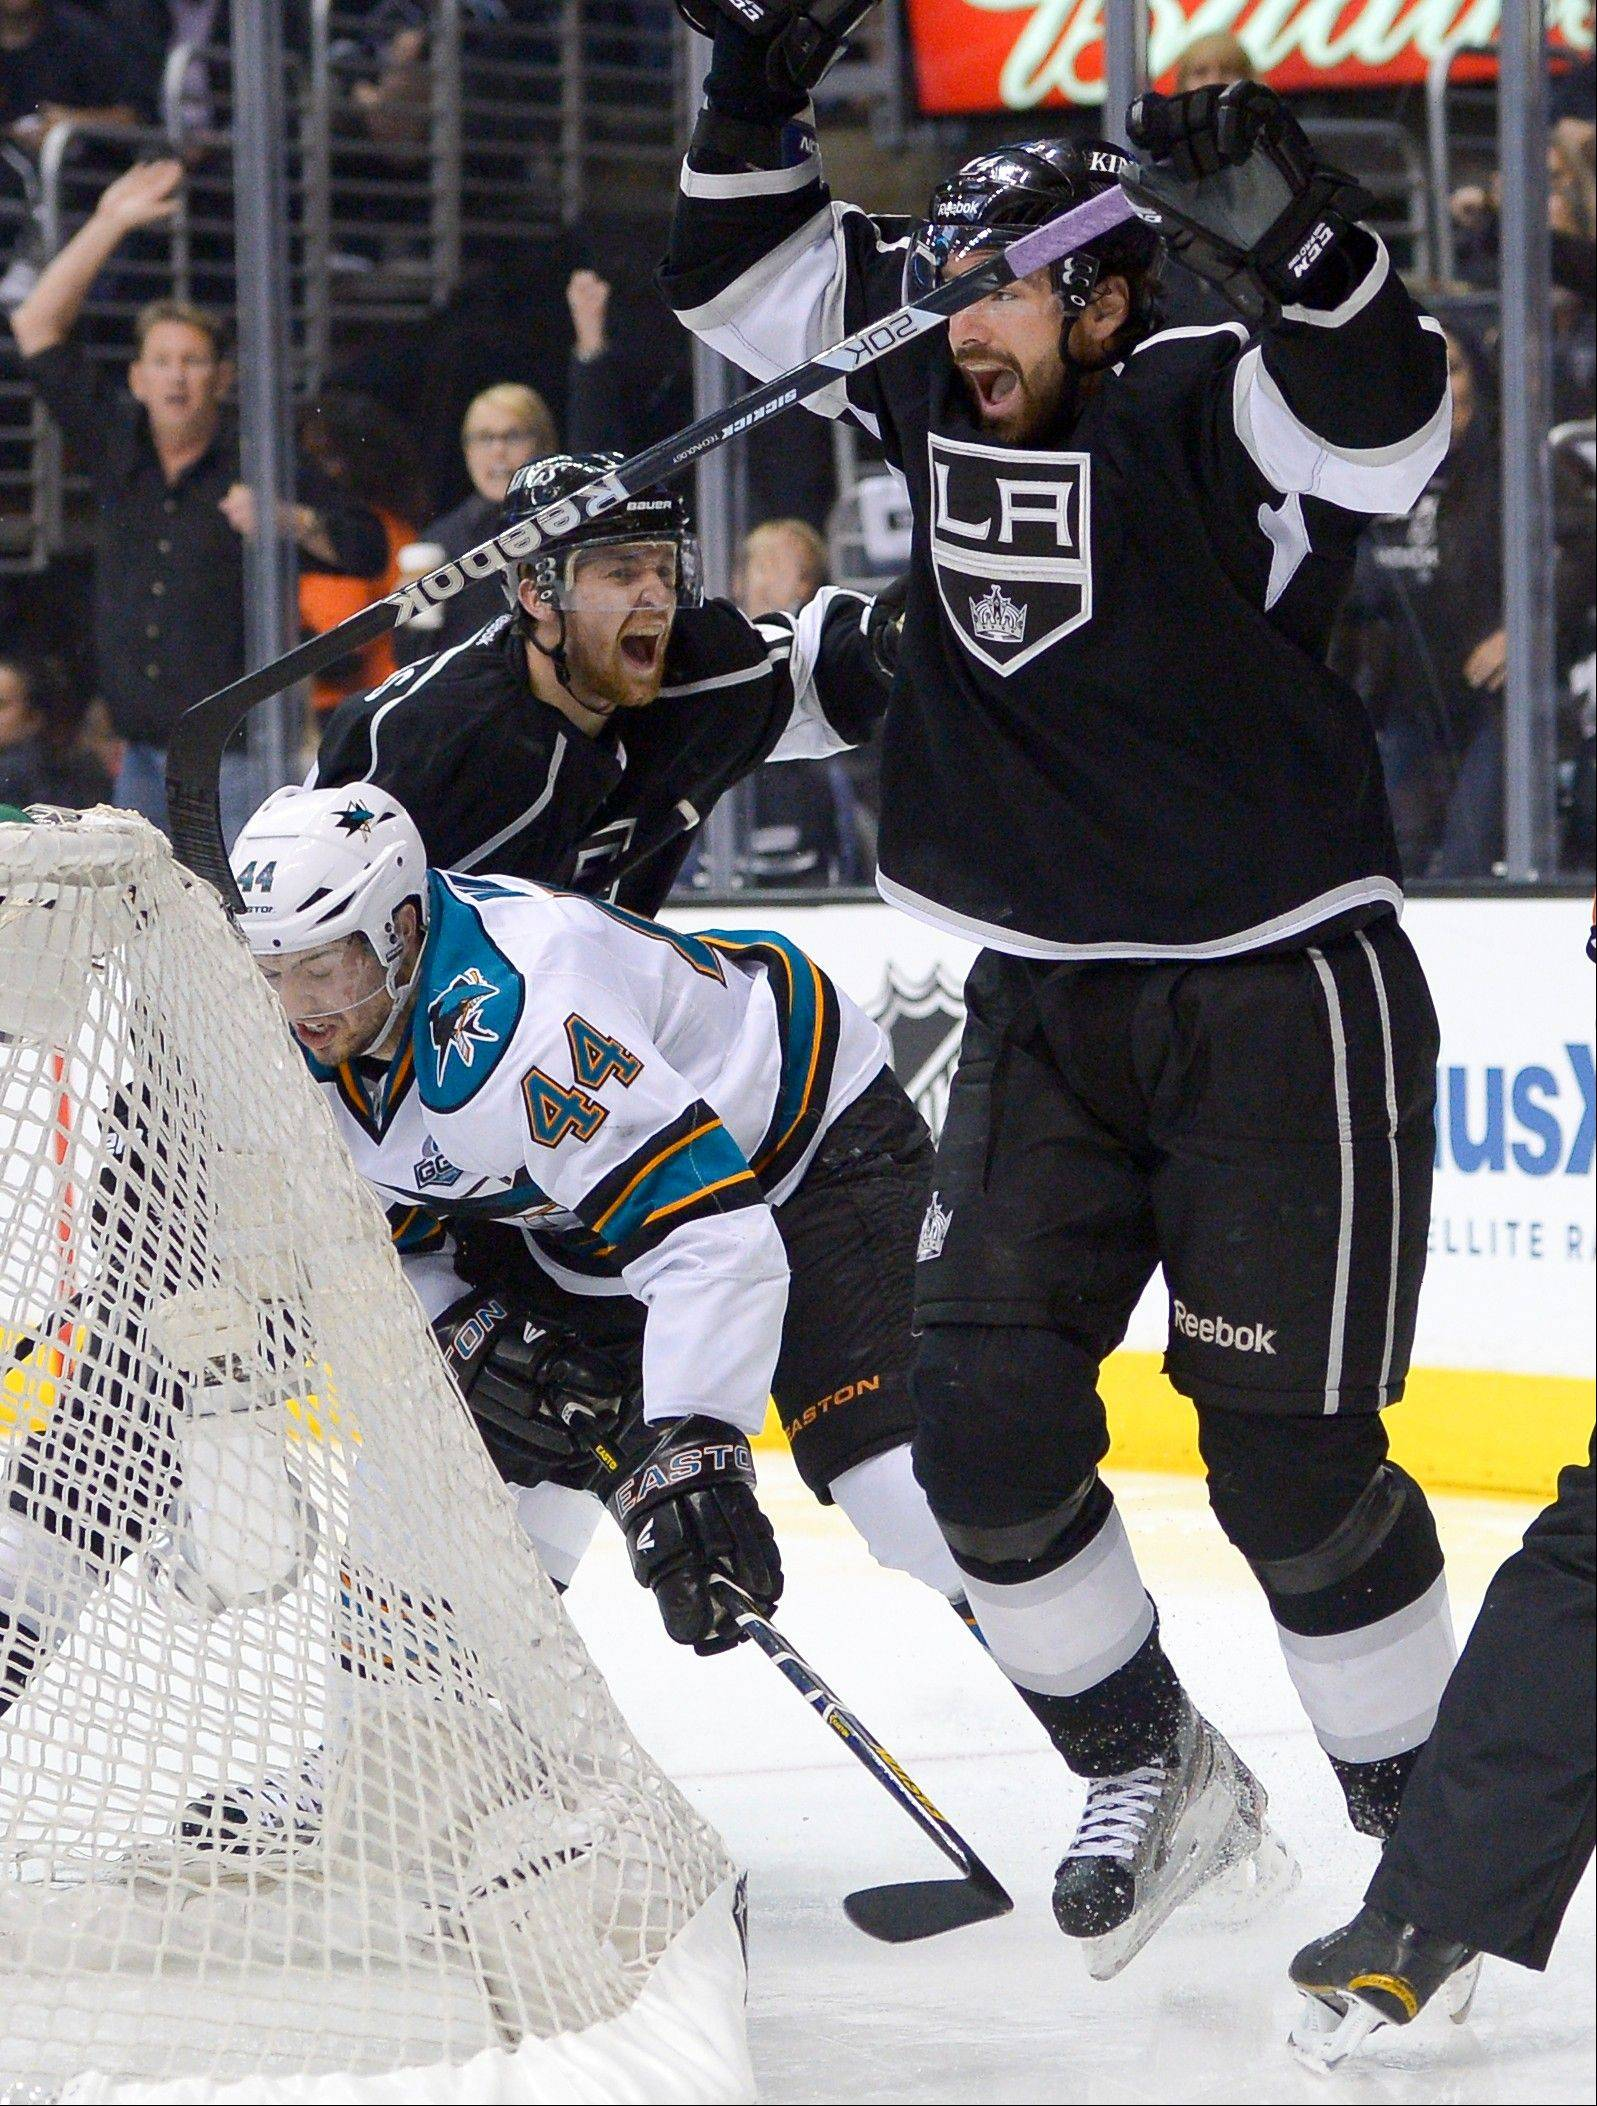 Los Angeles Kings right wing Justin Williams, right, celebrates his goal with Trevor Lewis as San Jose Sharks defenseman Marc-Edouard Vlasic, left, looks away during the second period in Game 7 of the Western Conference semifinals in the NHL hockey Stanley Cup playoffs, Tuesday, May 28, 2013, in Los Angeles. (AP Photo/Mark J. Terrill)